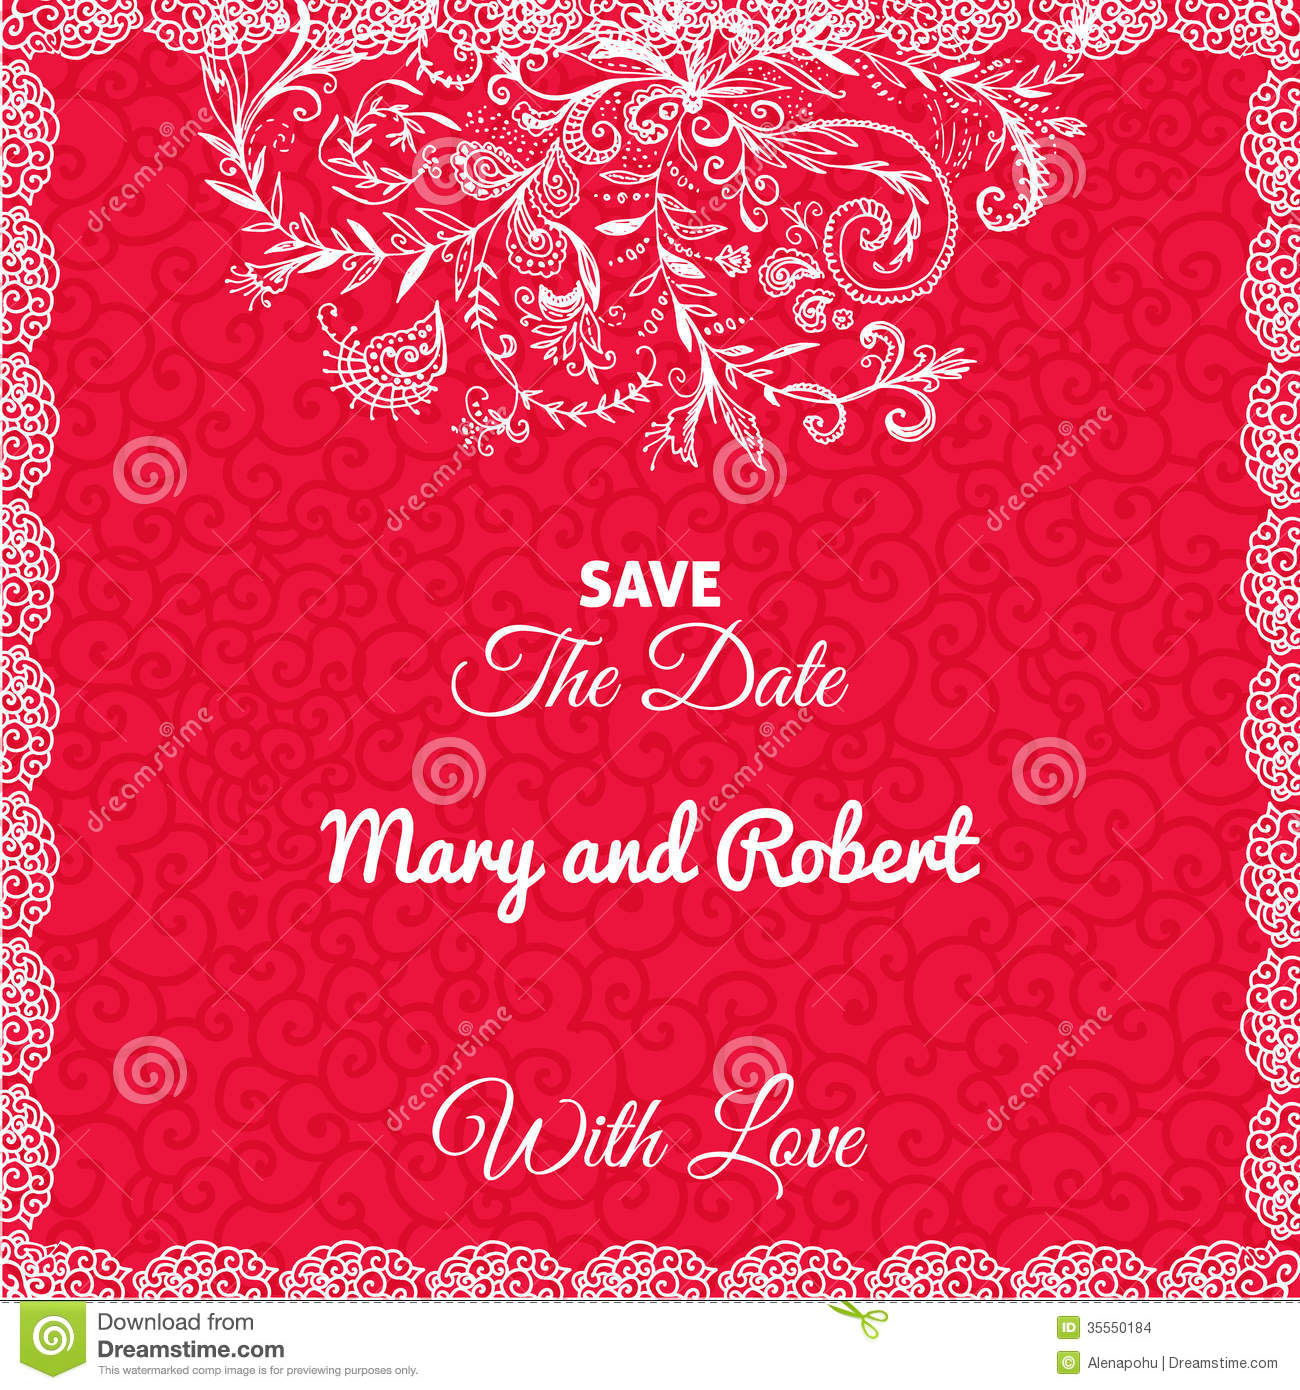 Modern wedding invitations for you: Red card wedding invitations